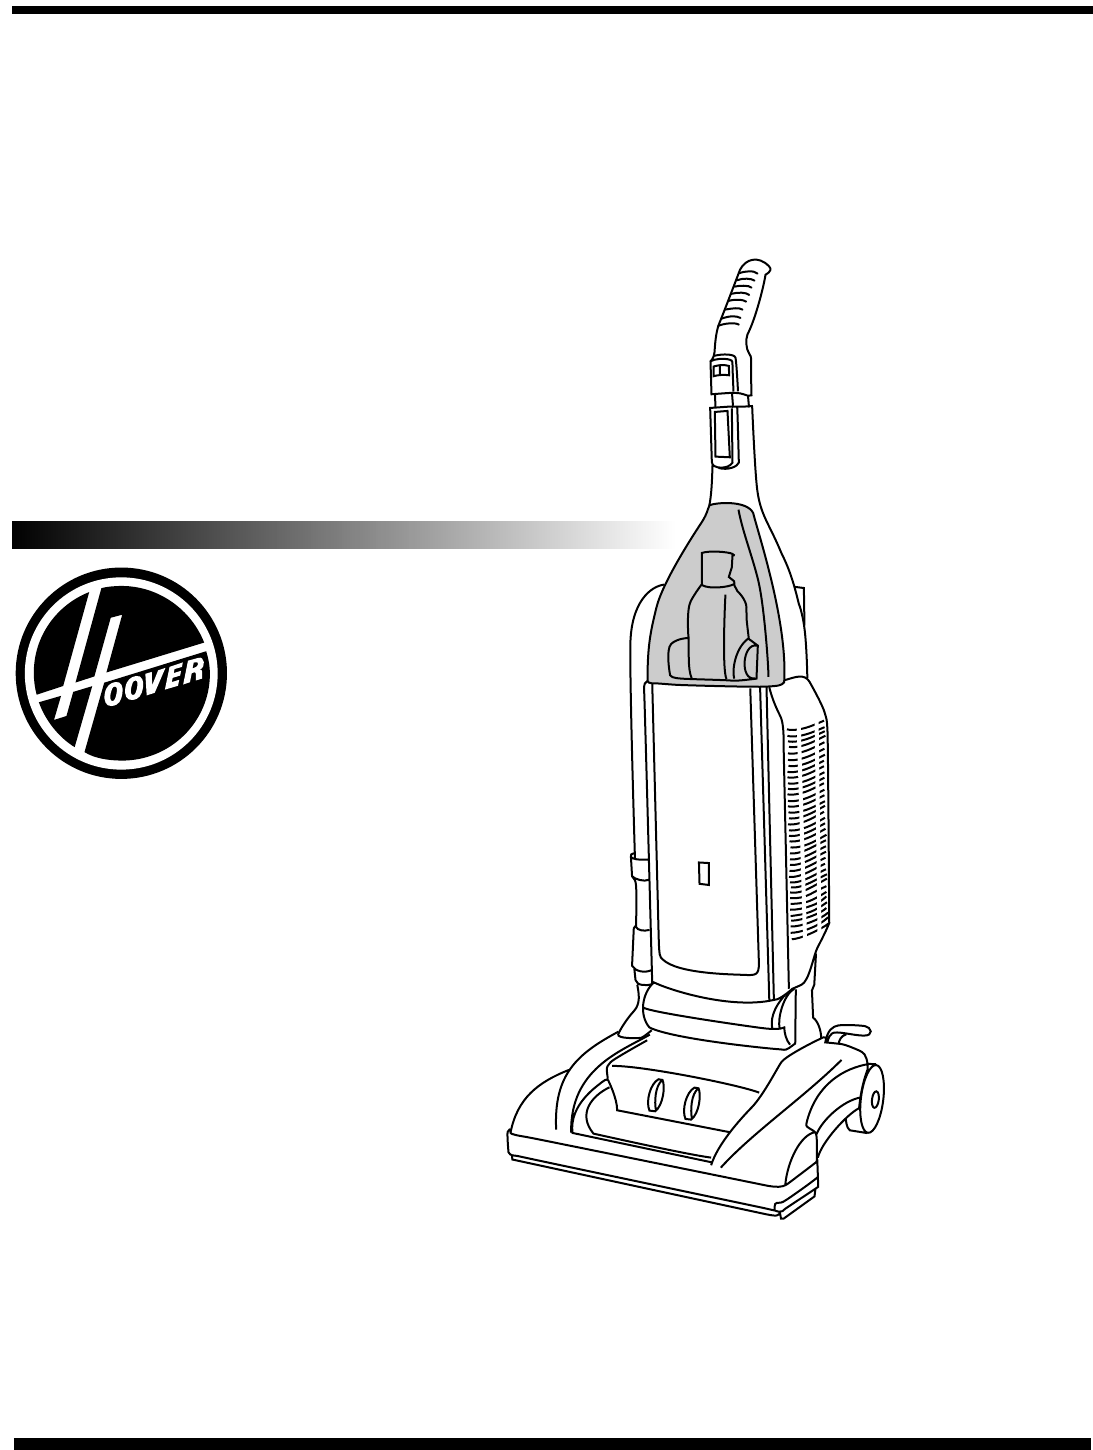 Vacuum Cleaner Drawing At Getdrawings Com Free For